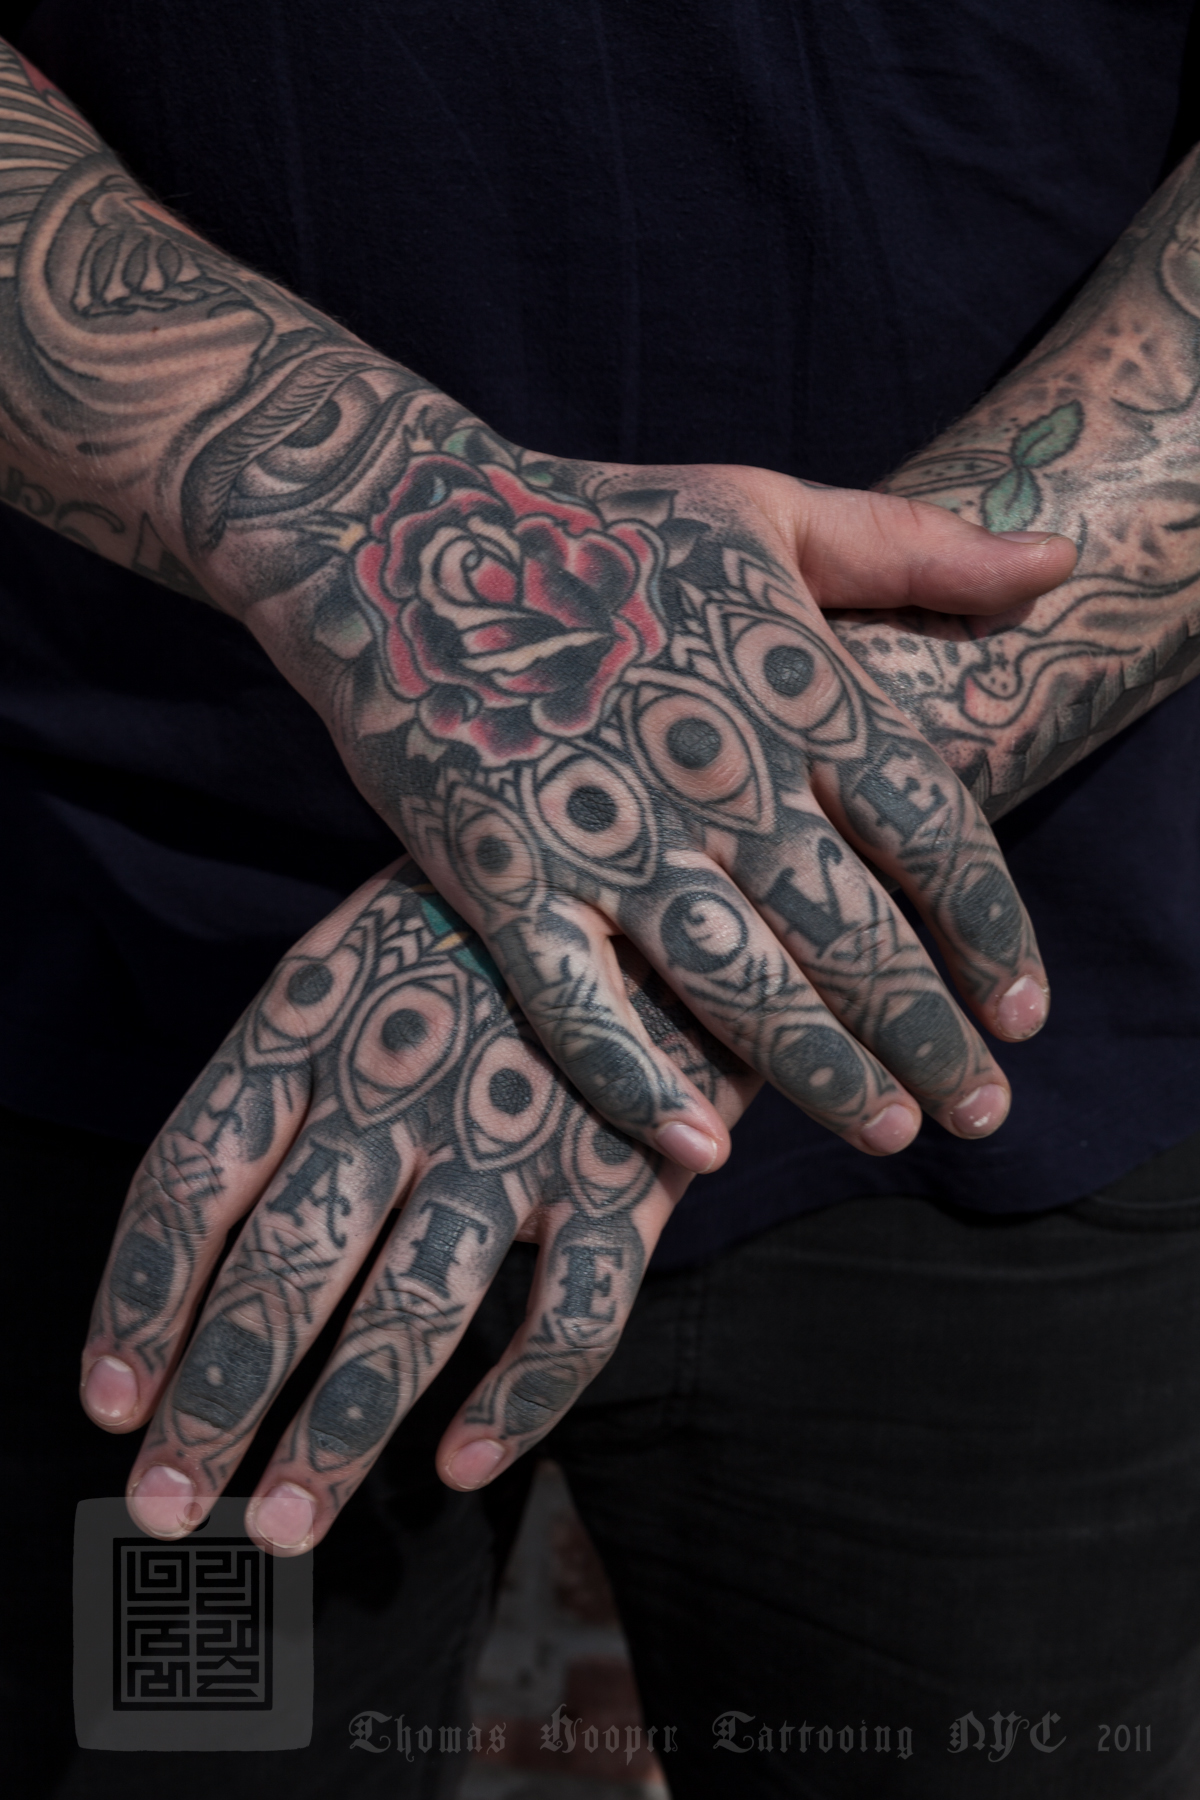 Marvin s hand tattoos thomas hooper 003 march 24 2011 for Electric hand tattoo